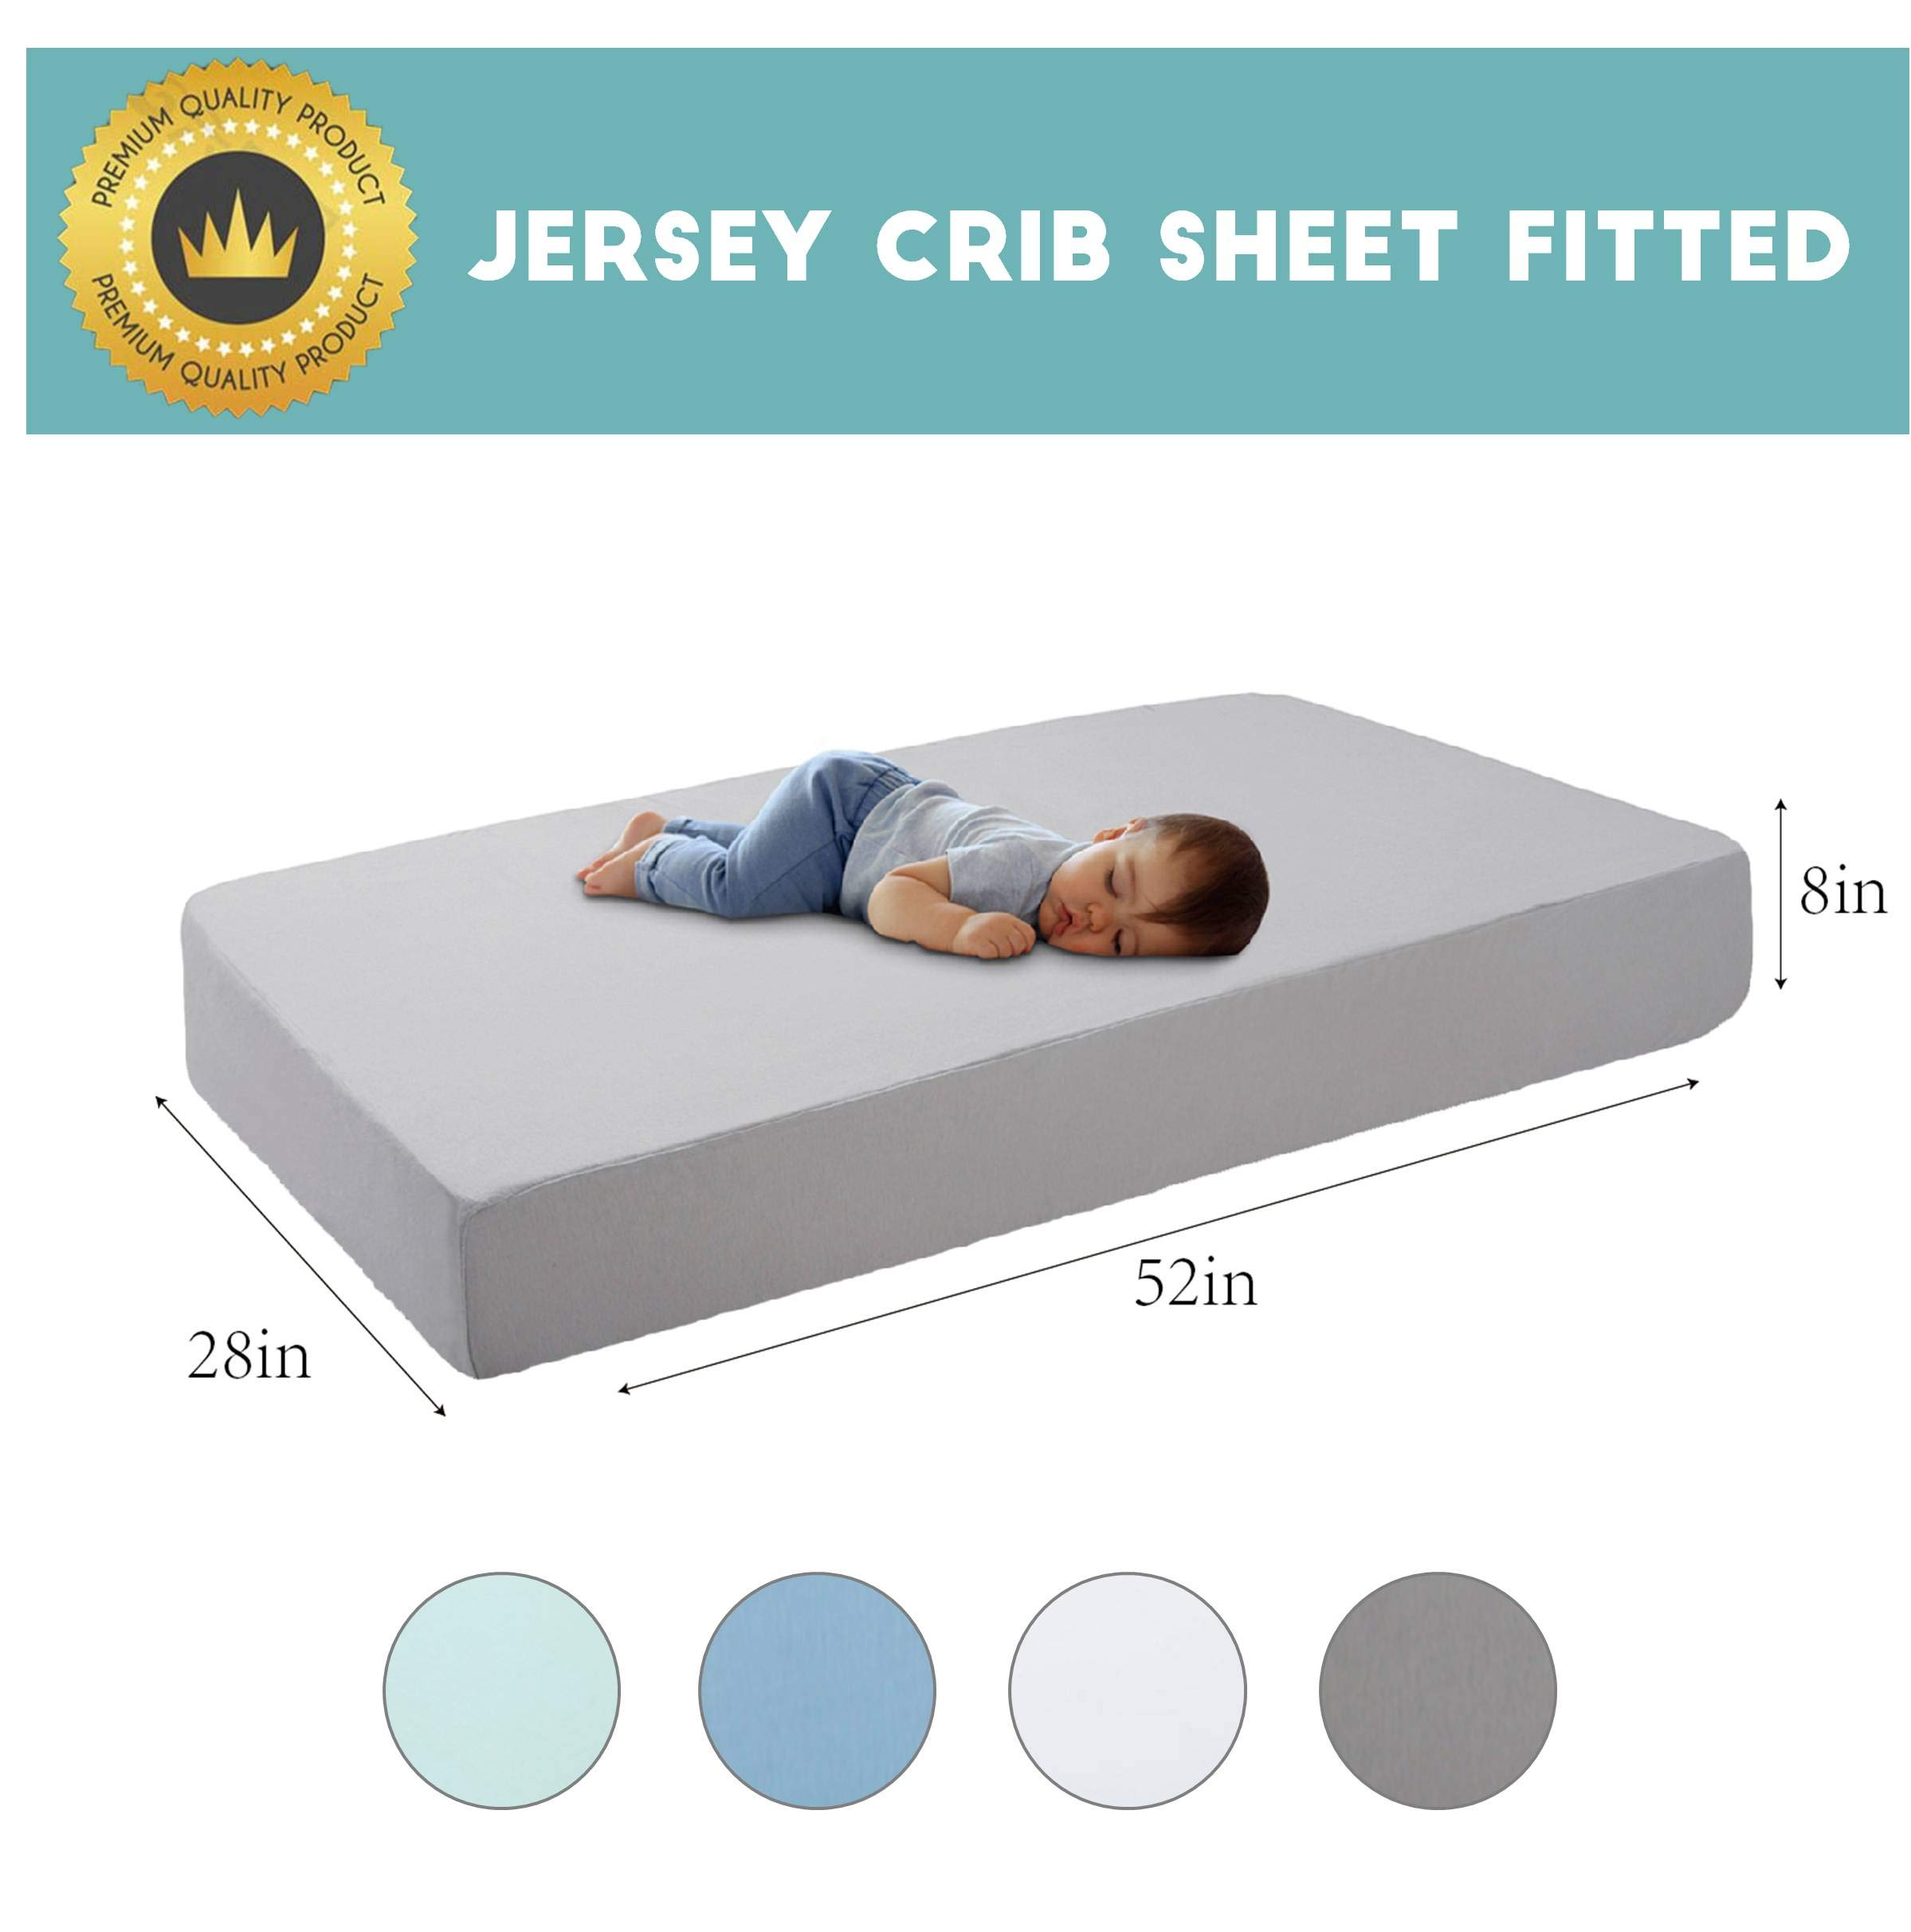 Stretchy Jersey Knit Cotton Grey Crib Sheet Upgrade Soft And Breathable Baby Mattress Sheet Extra Deep Pocket Fits Standard Crib And Toddler Mattress For Baby Boys And Girls Size 28x52in